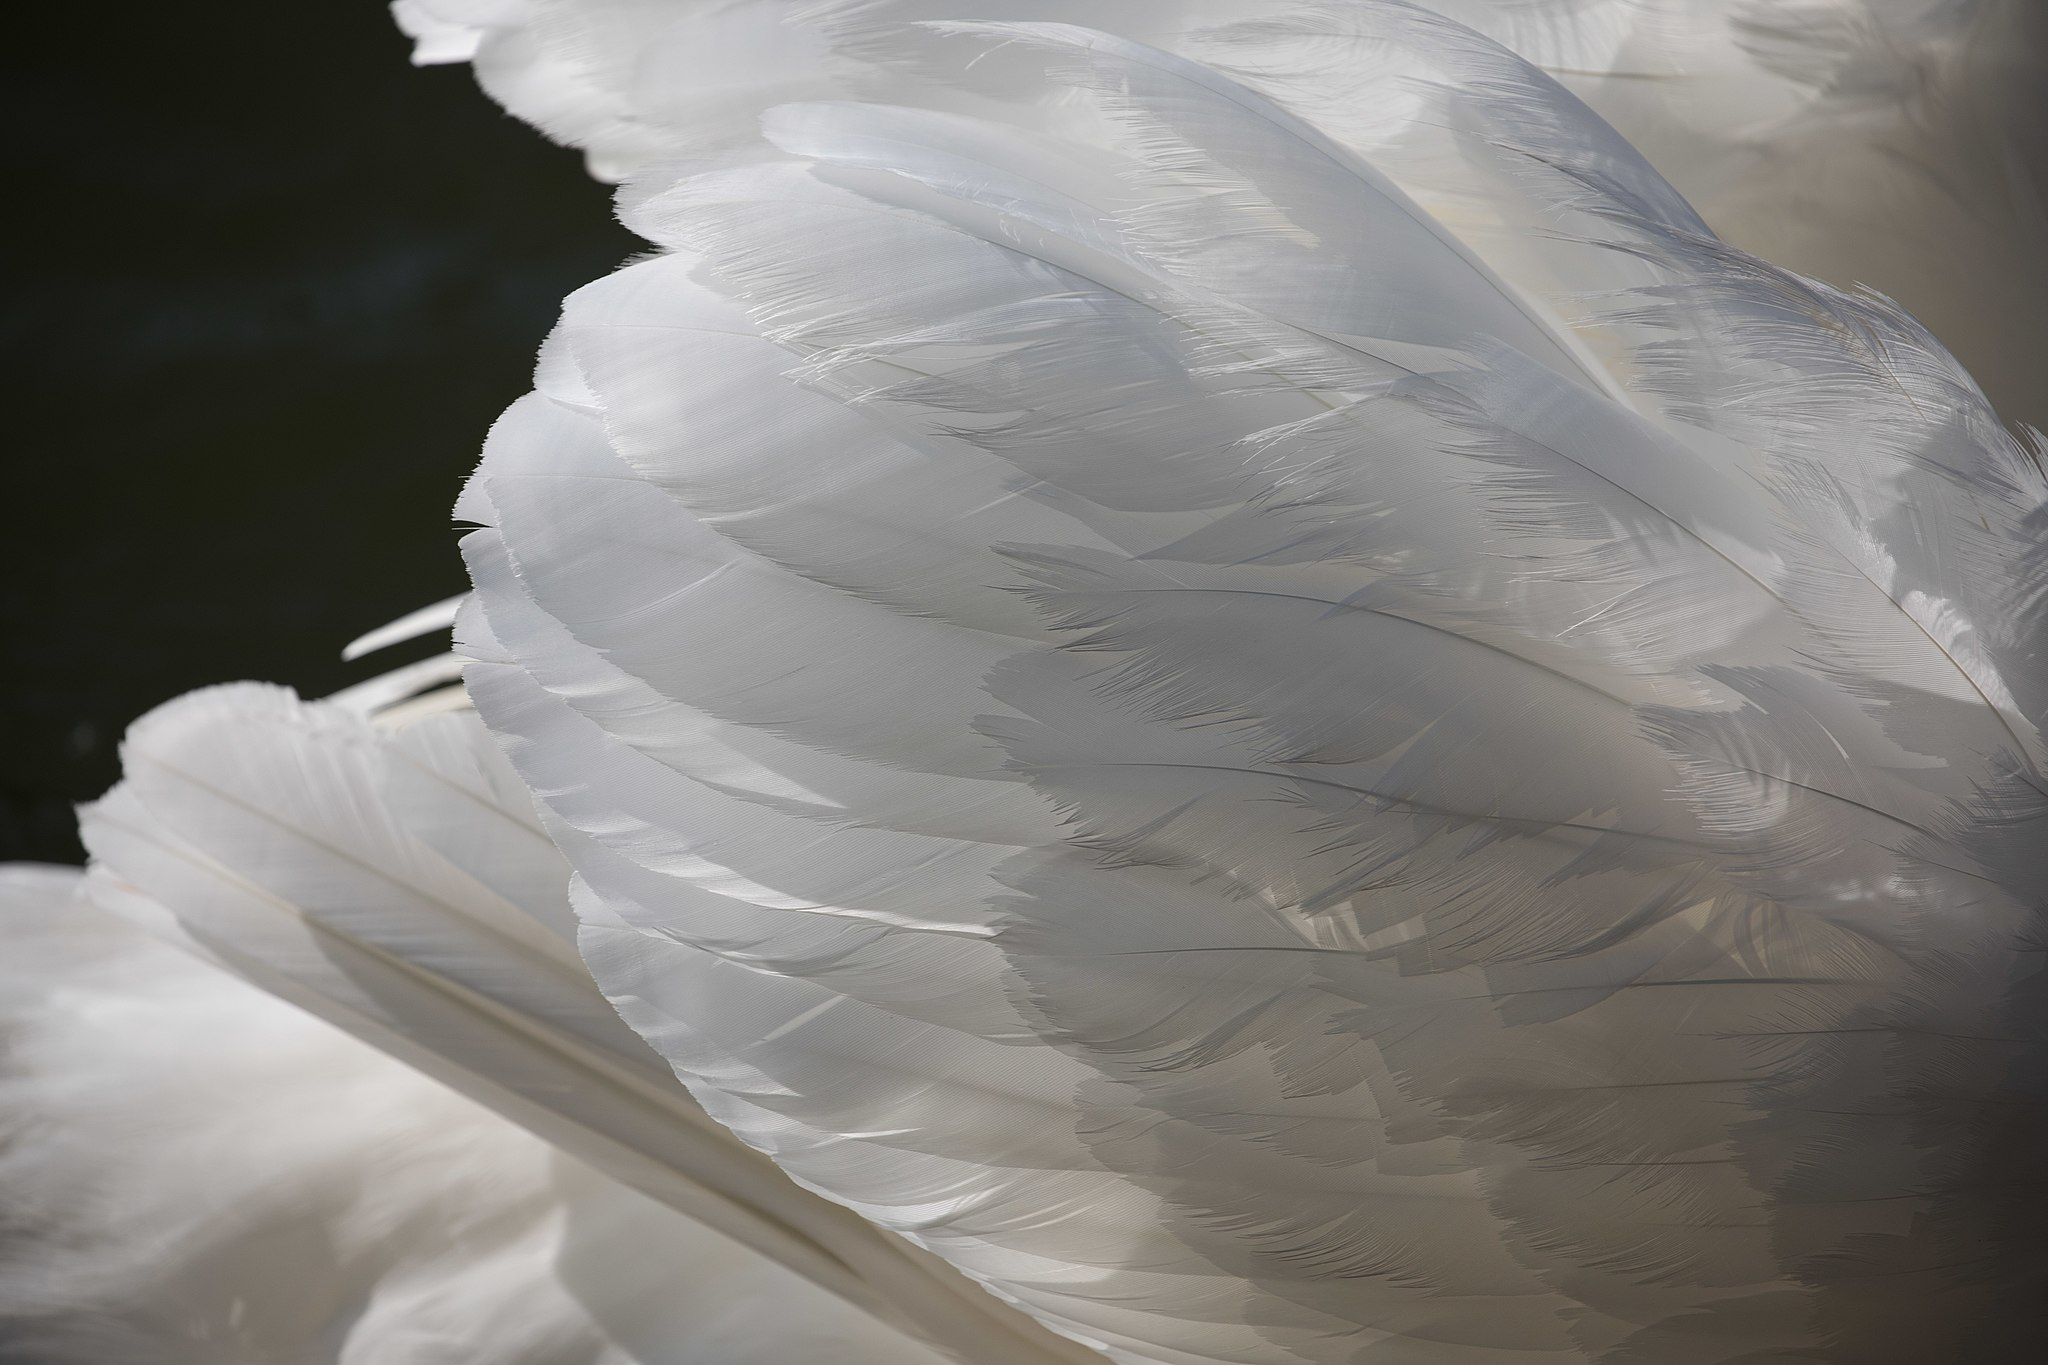 Cygnus wing feathers in the sun